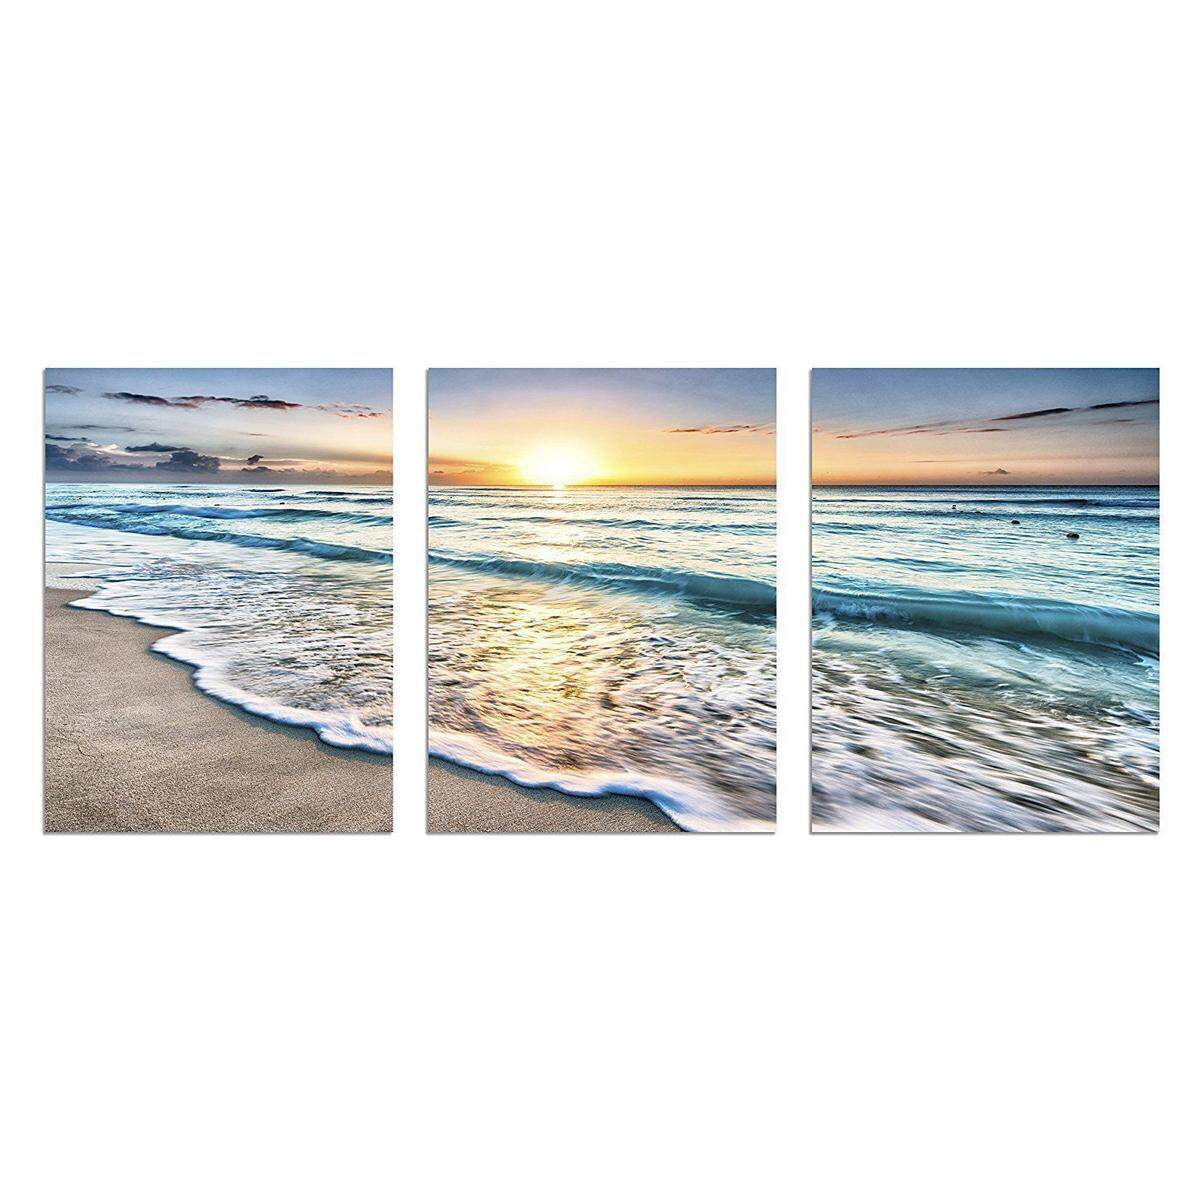 3pcs FRAMED Beach Canvas Wall Art Sunset Sand Ocean 3 Panel Home Picture Decor Gift [with frame]